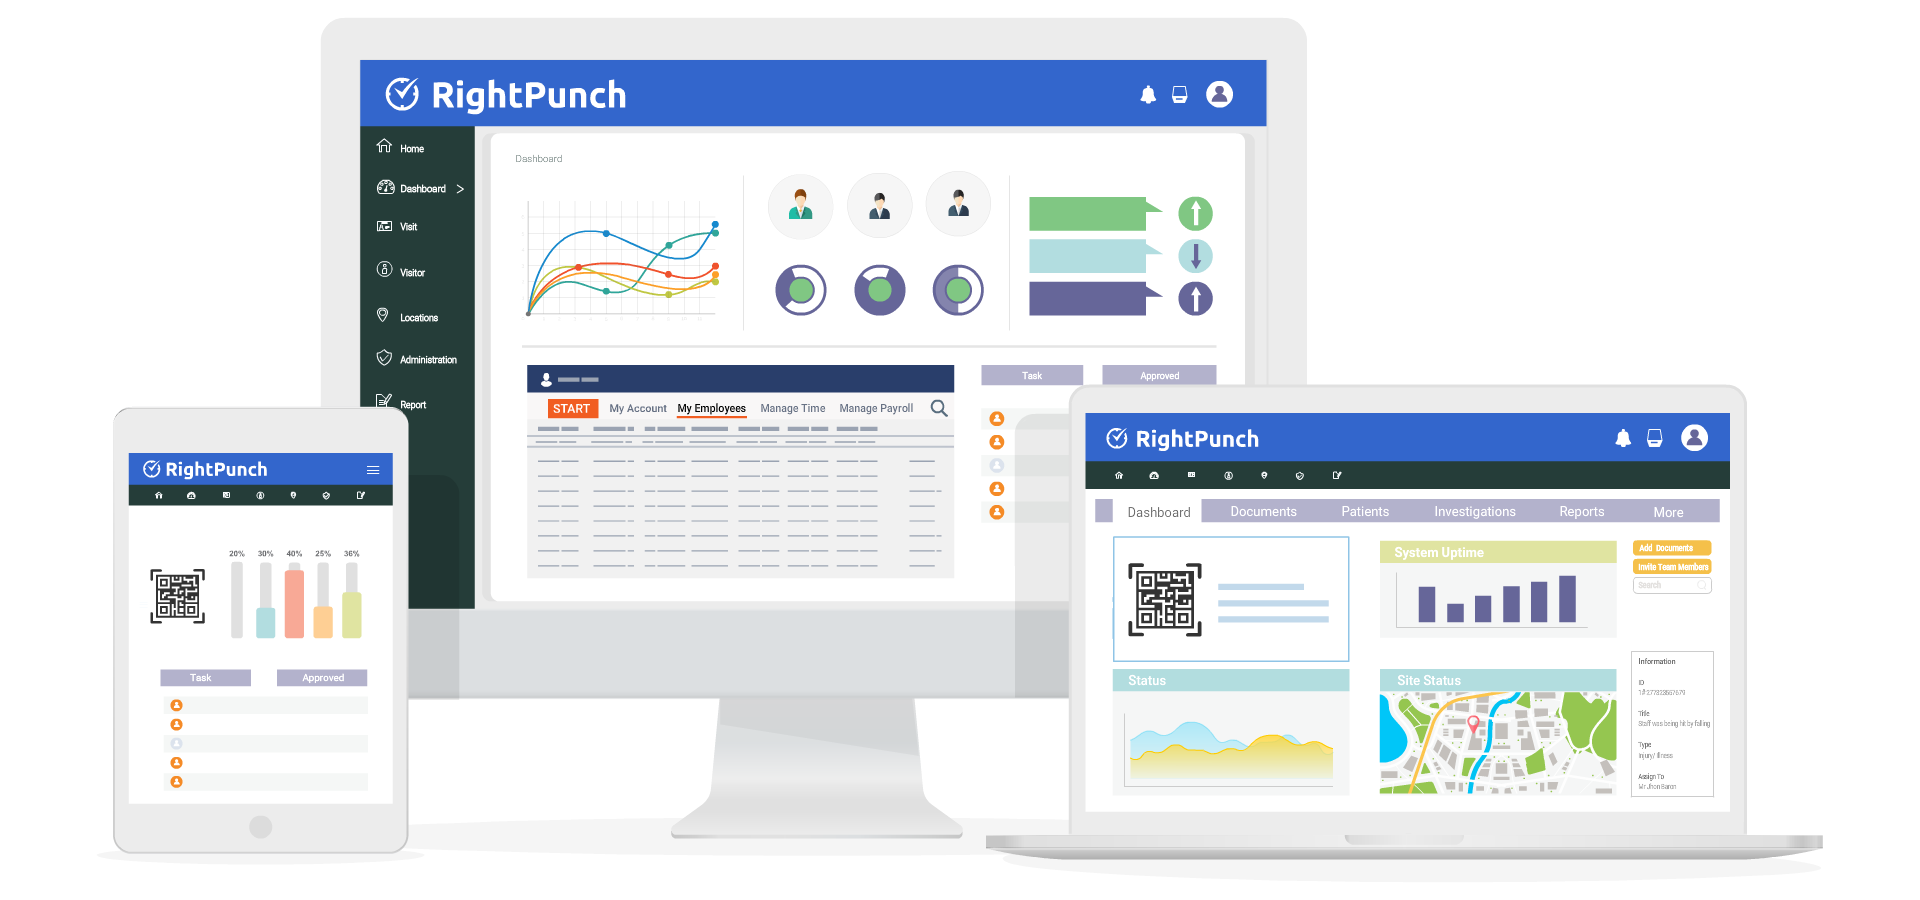 rightpunch-turn-a-tablet-into-a-touchless-and-hygienic-time-capture-device-cloudapper